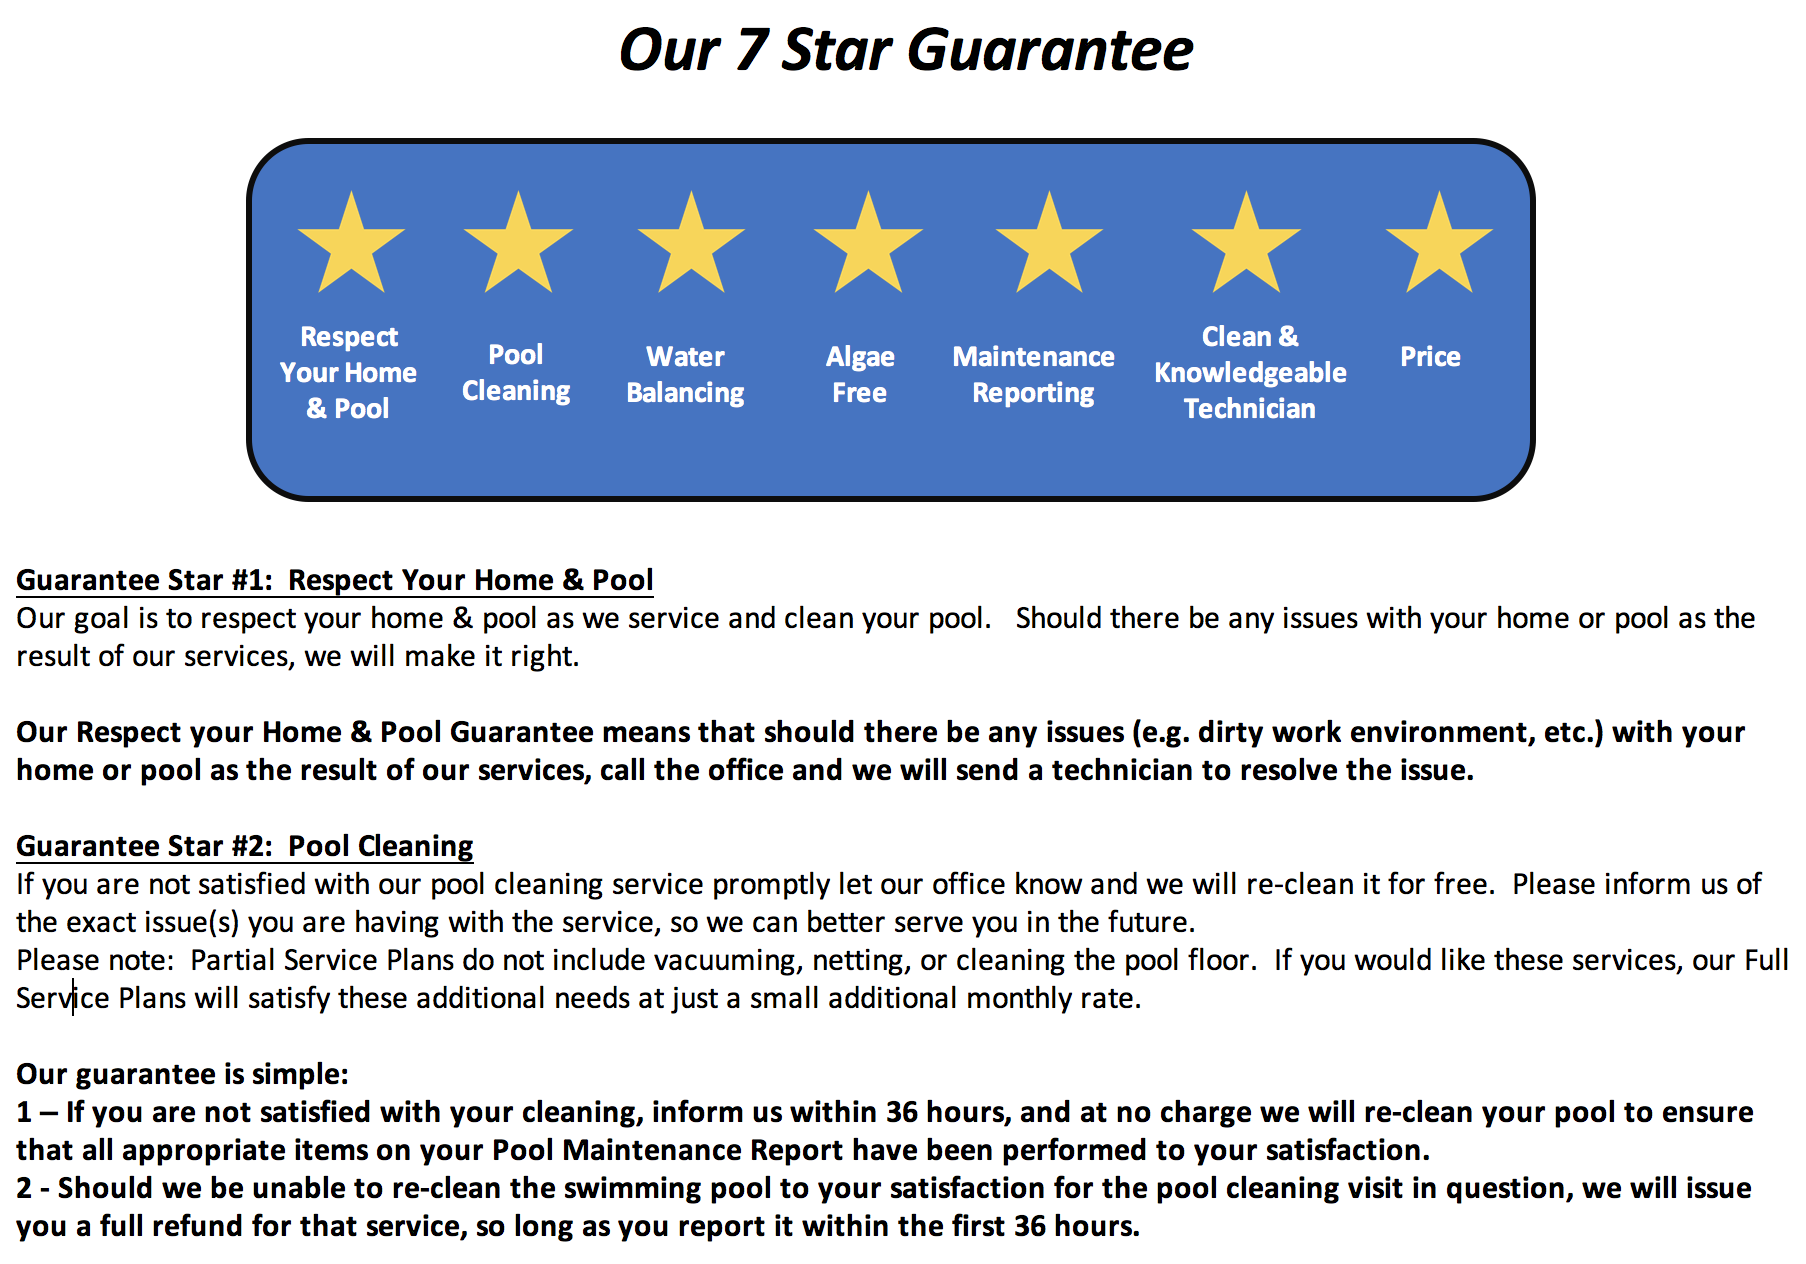 7 Star Tarrytown Pool Service Guarantee